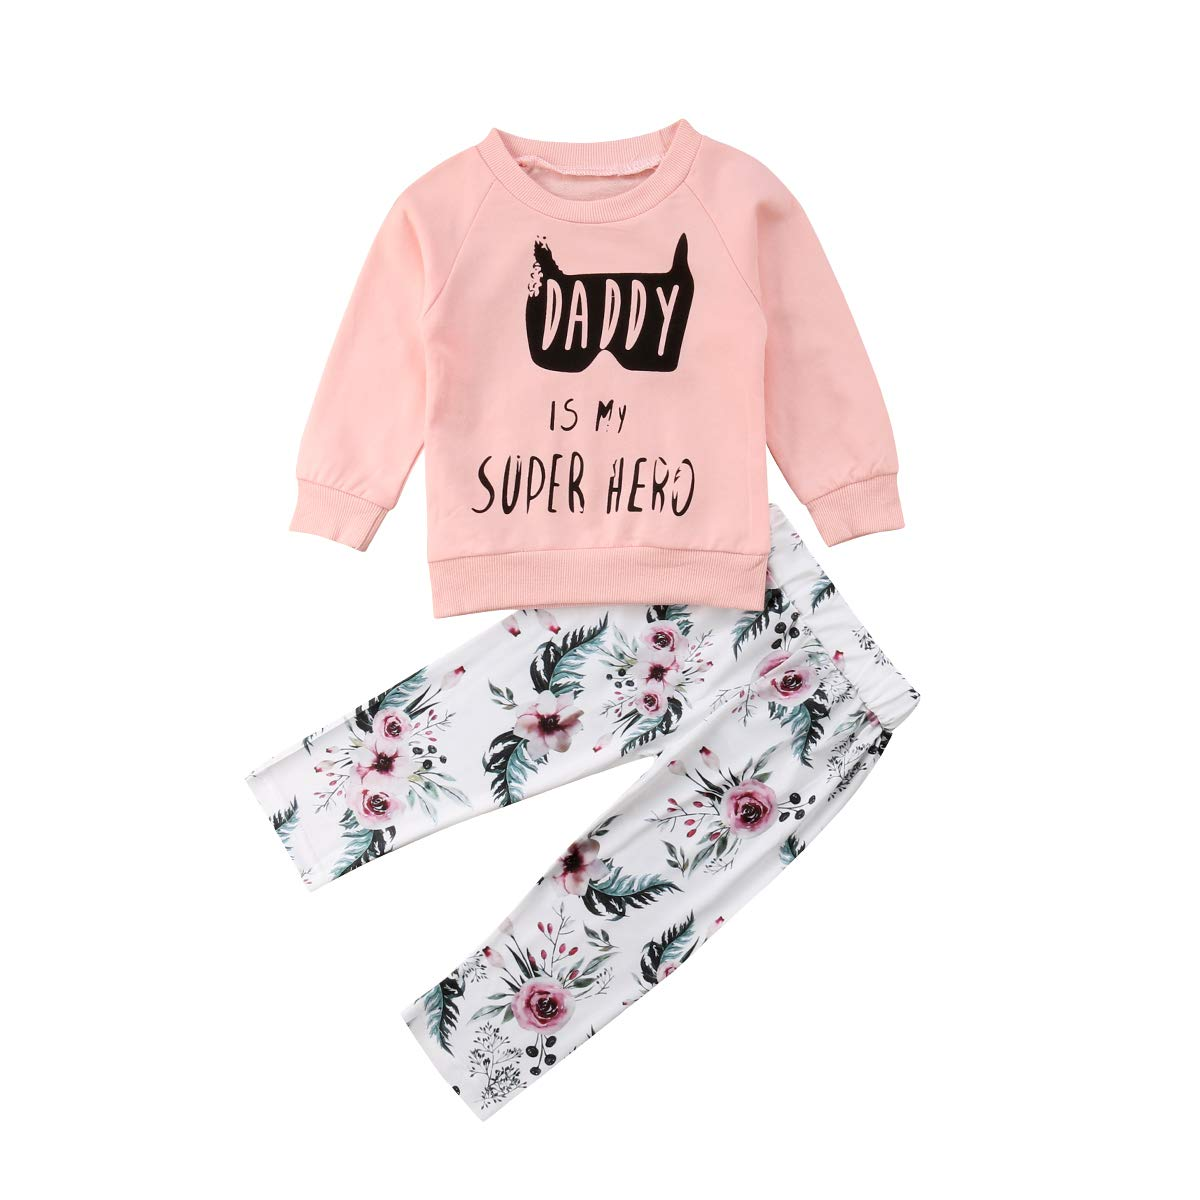 Baby Girl 3pcs Outfit Set Letter Print Long Sleeve Top+Retro Long Pants+Headband